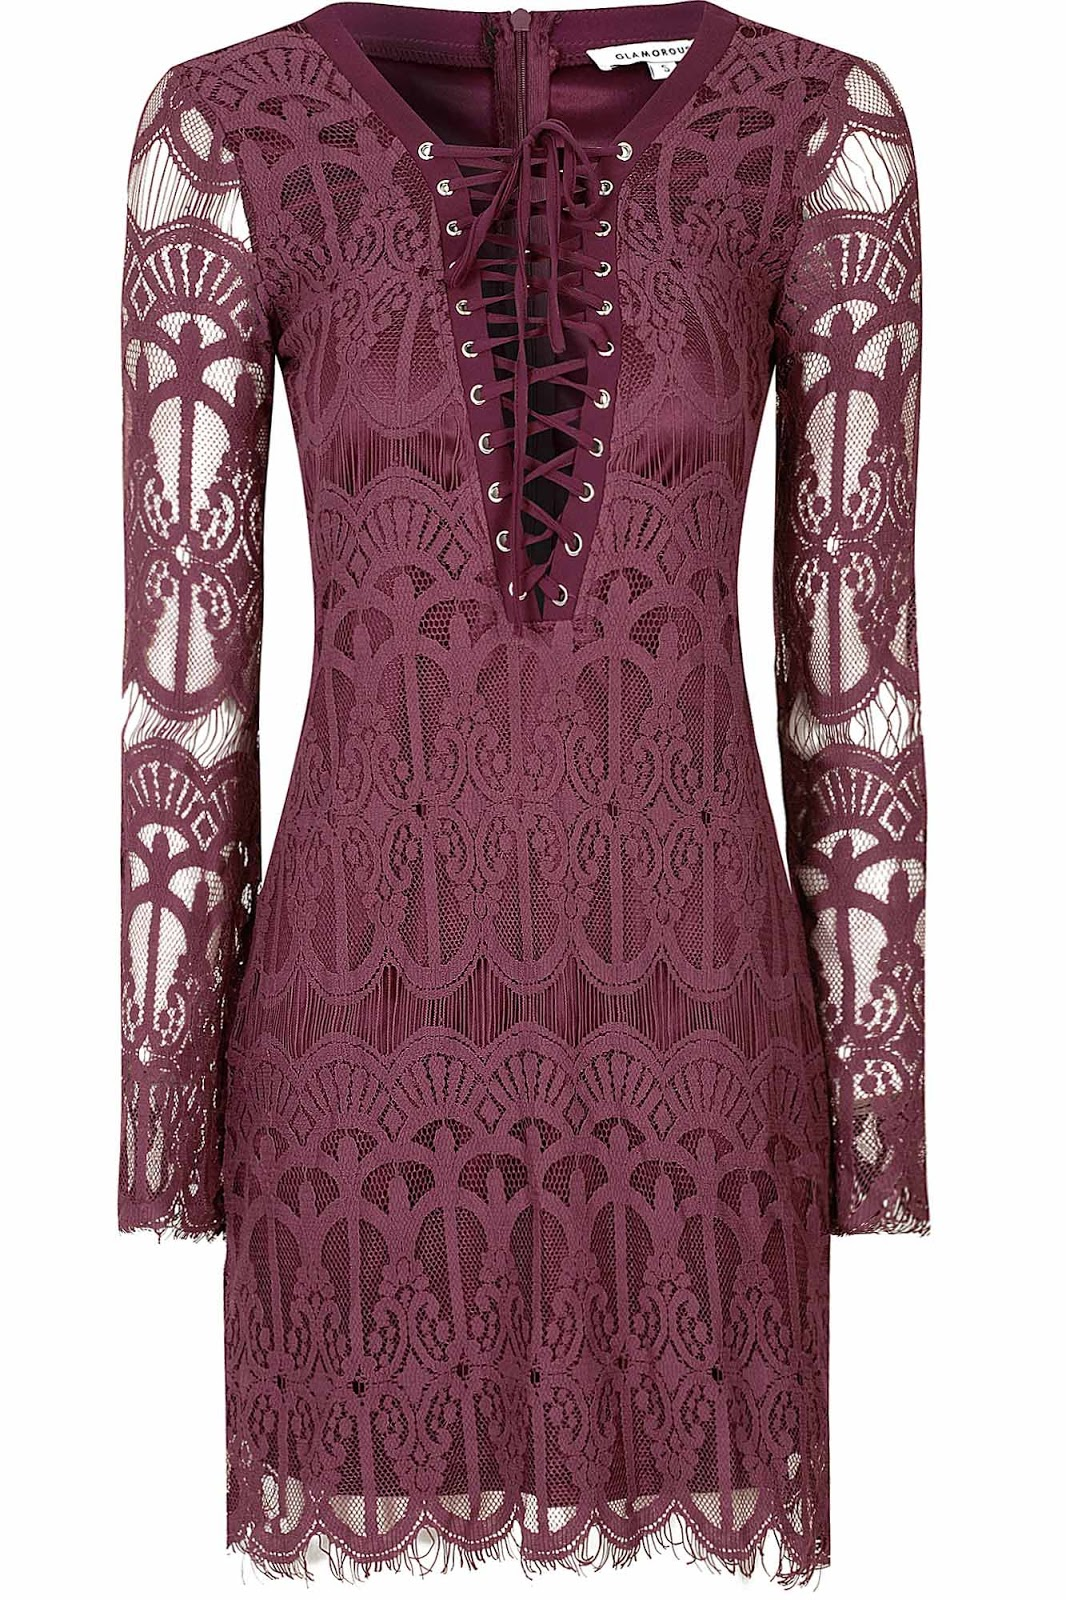 Purple Long Sleeve Lace Dress from Glamorous.com